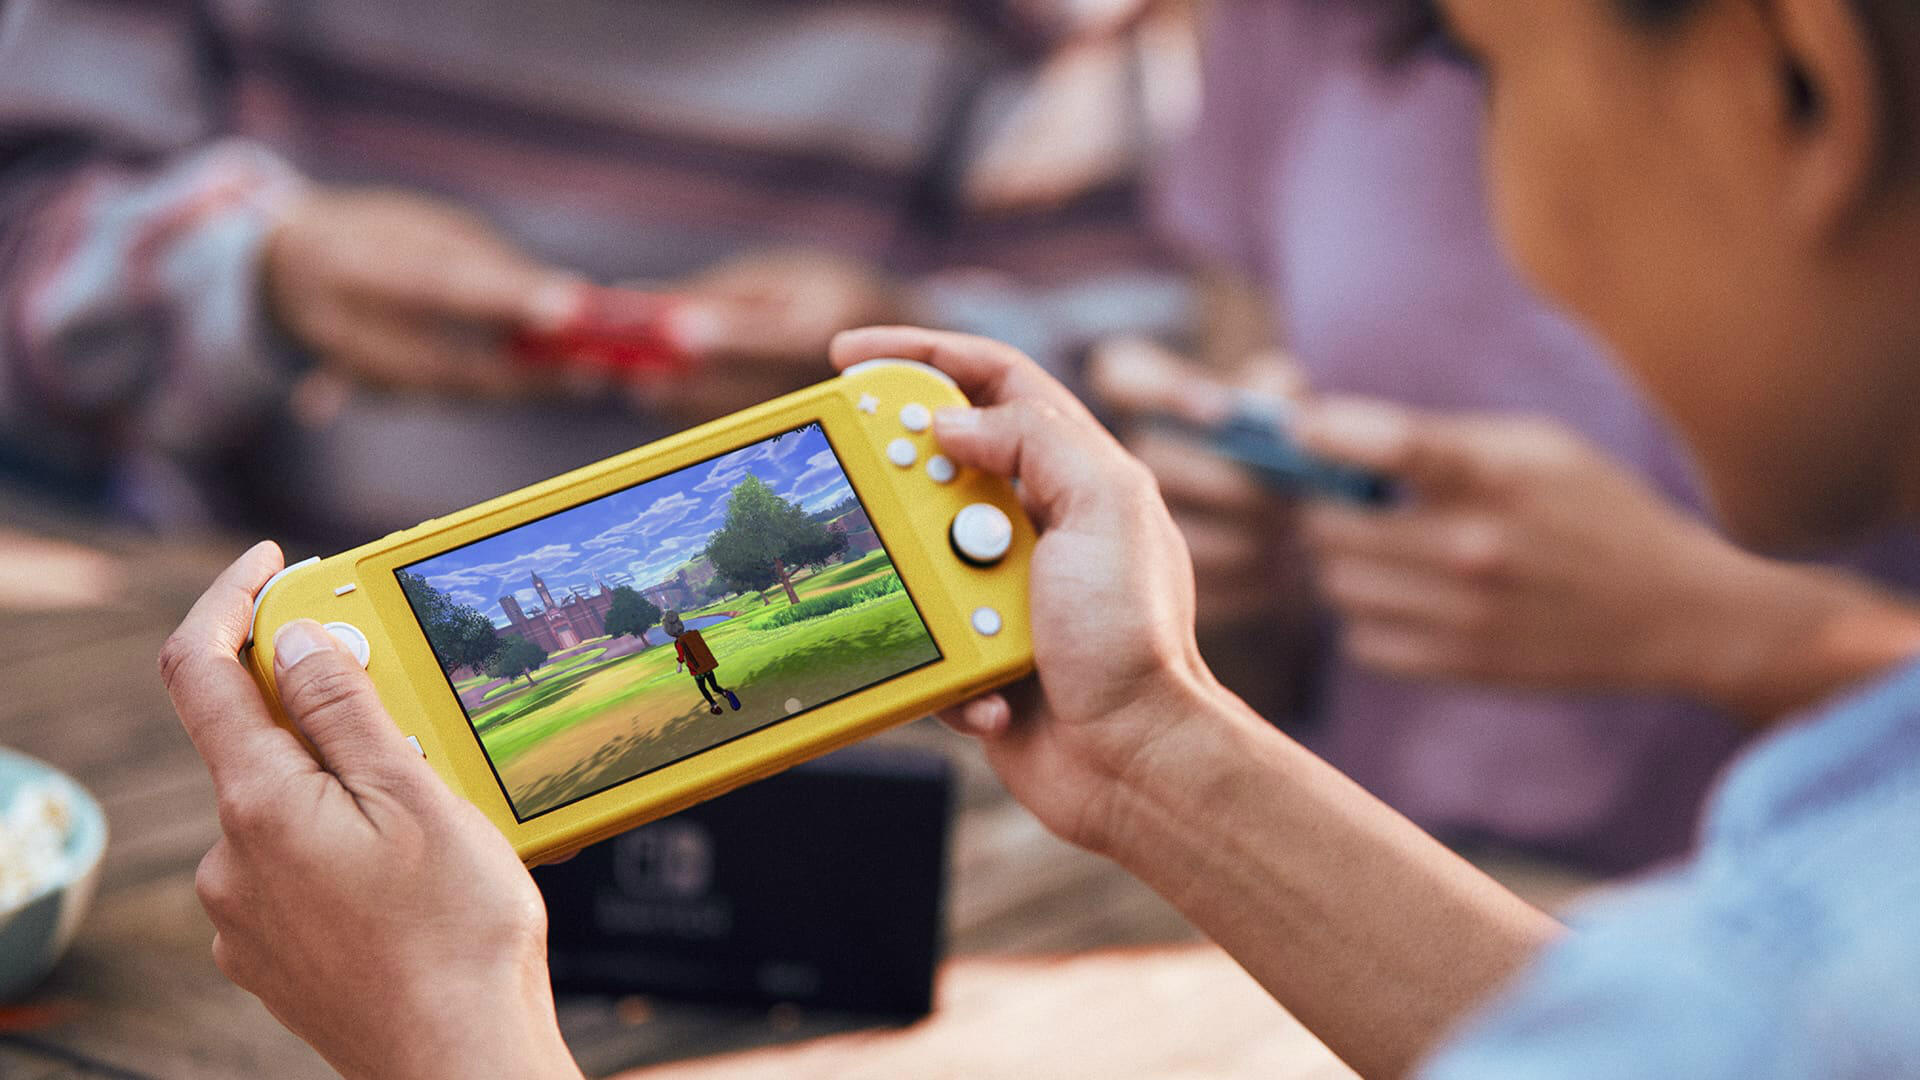 It's Time for Nintendo Switch Games to Have a Better Handheld Experience